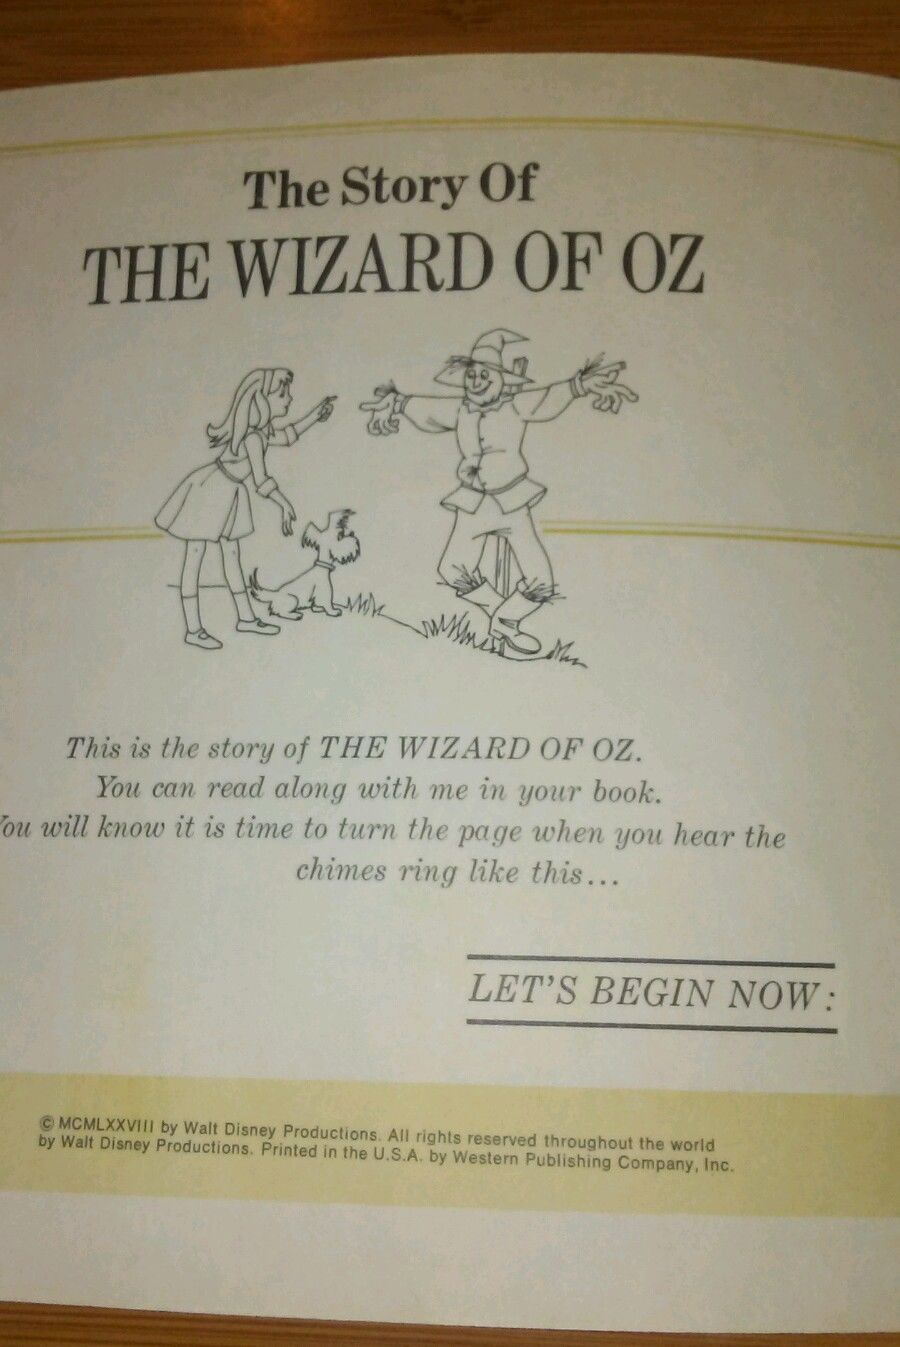 1977 Walt Disney The Wizard of Oz book and tape (only book)